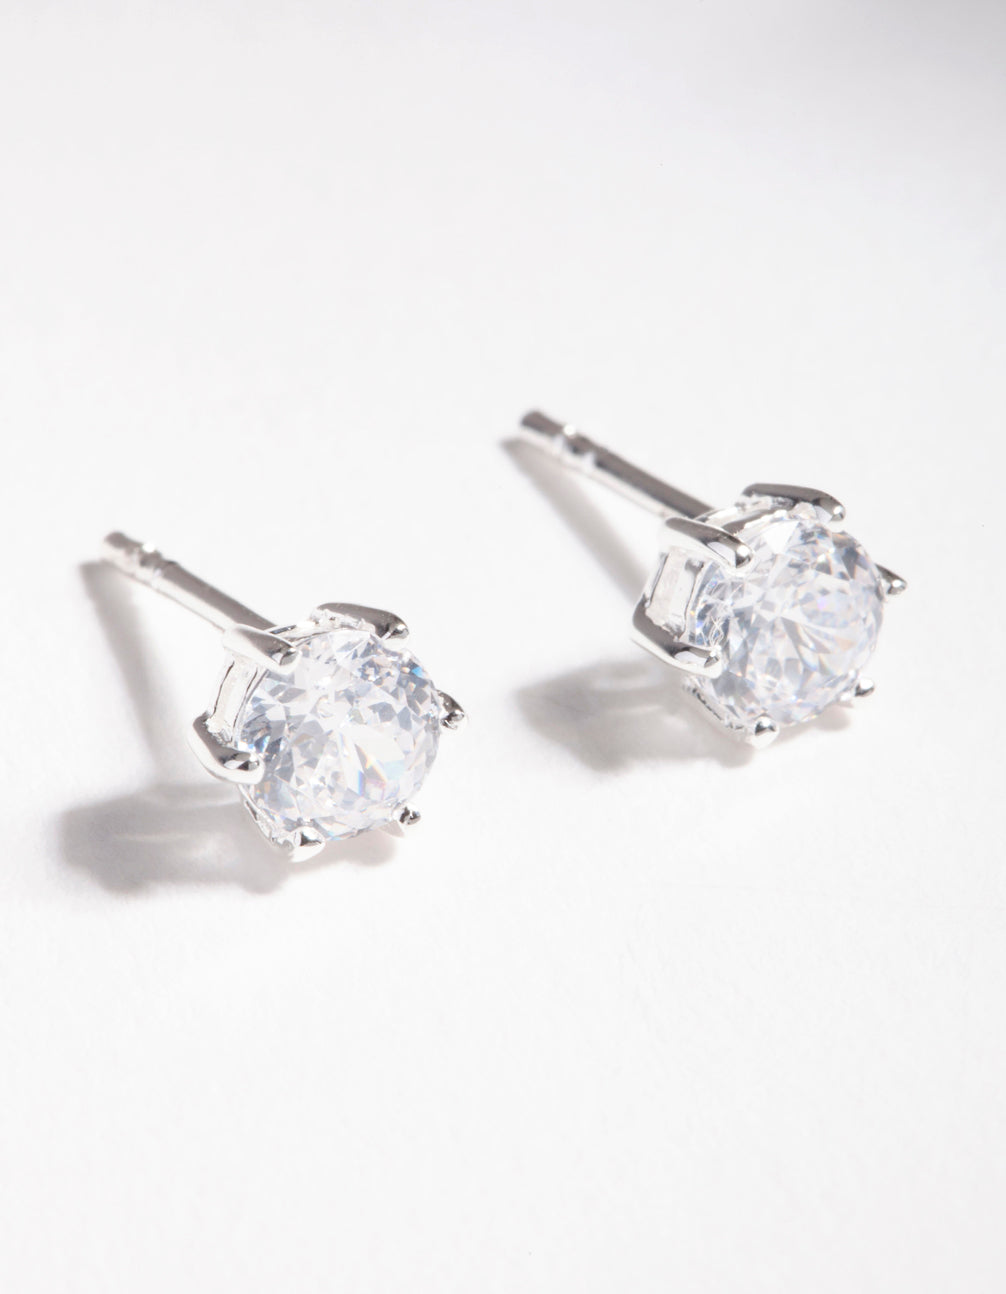 Sterling Silver Cubic Zirconia 6 Claw Stud Earring